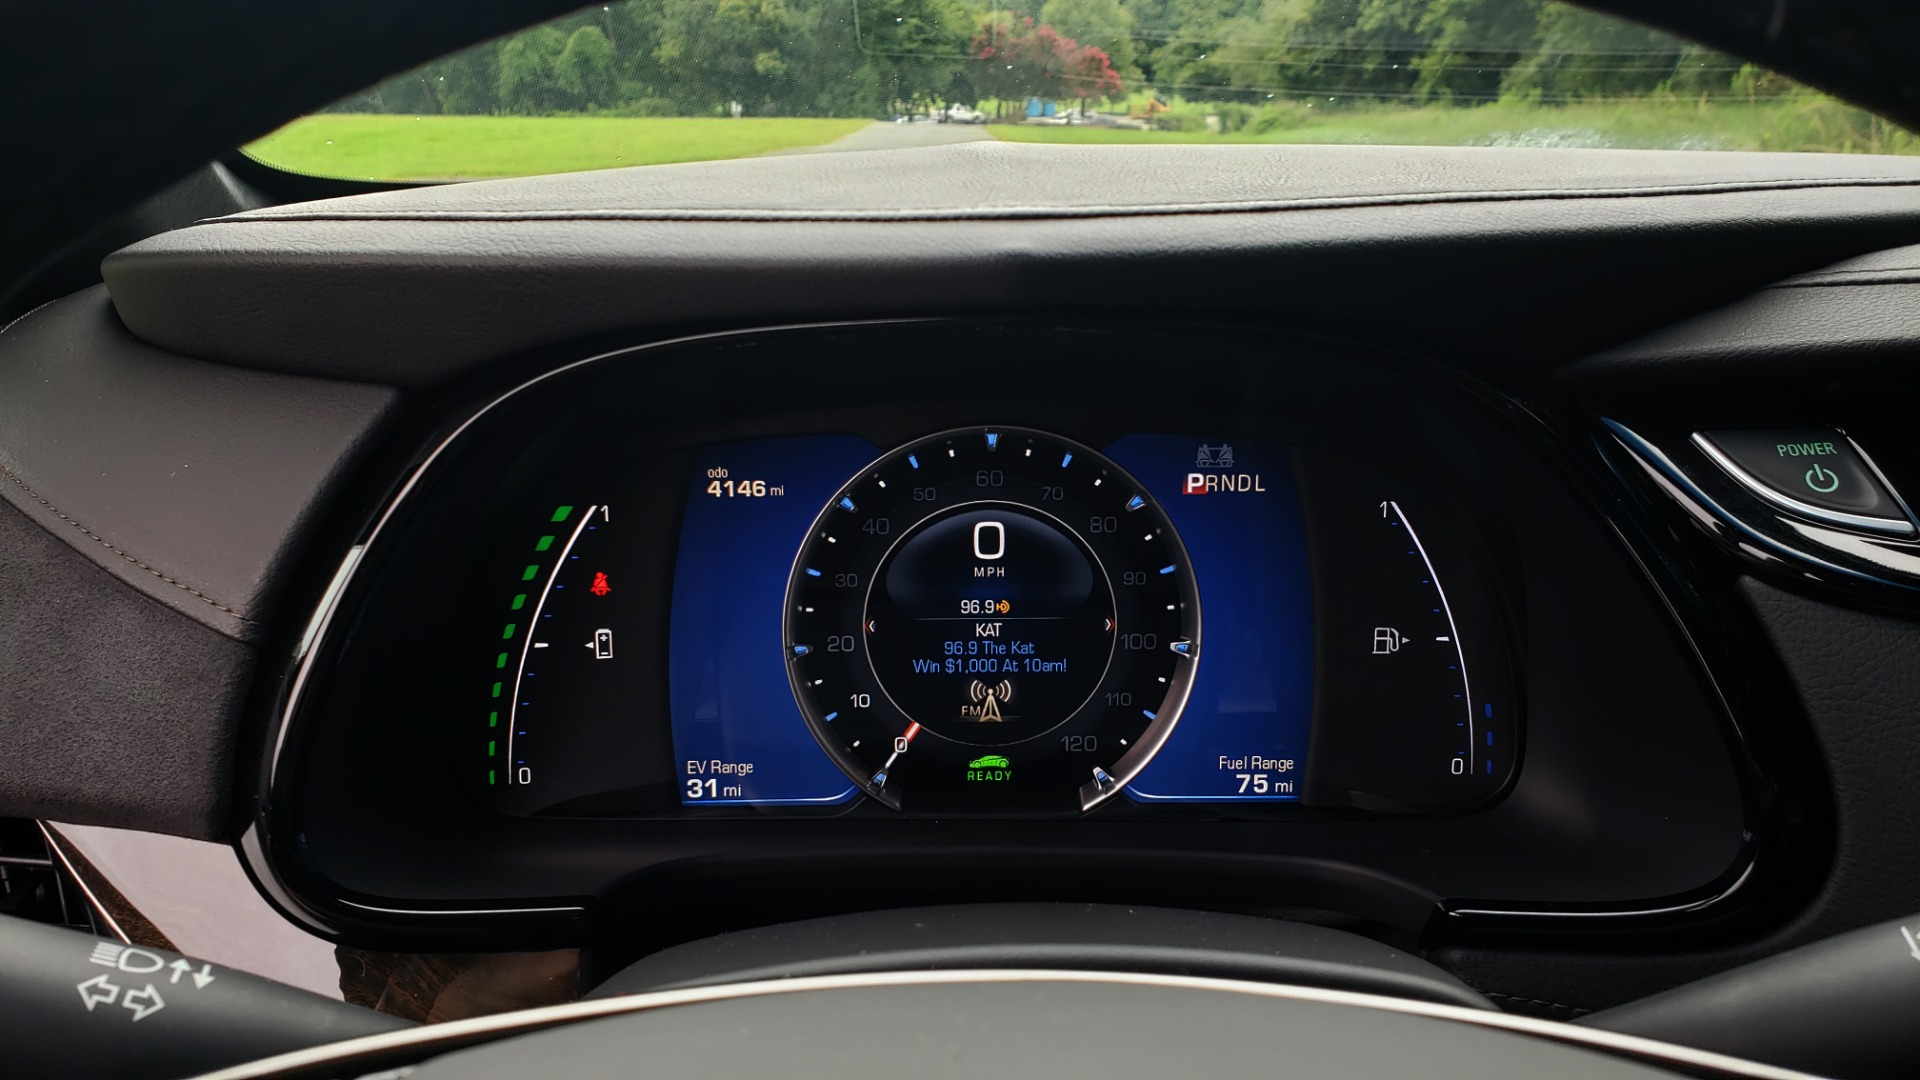 Used 2014 Cadillac ELR 2DR COUPE / HYBRID / NAV / BOSE / HEATED SEATS / REARVIEW for sale $34,000 at Formula Imports in Charlotte NC 28227 36